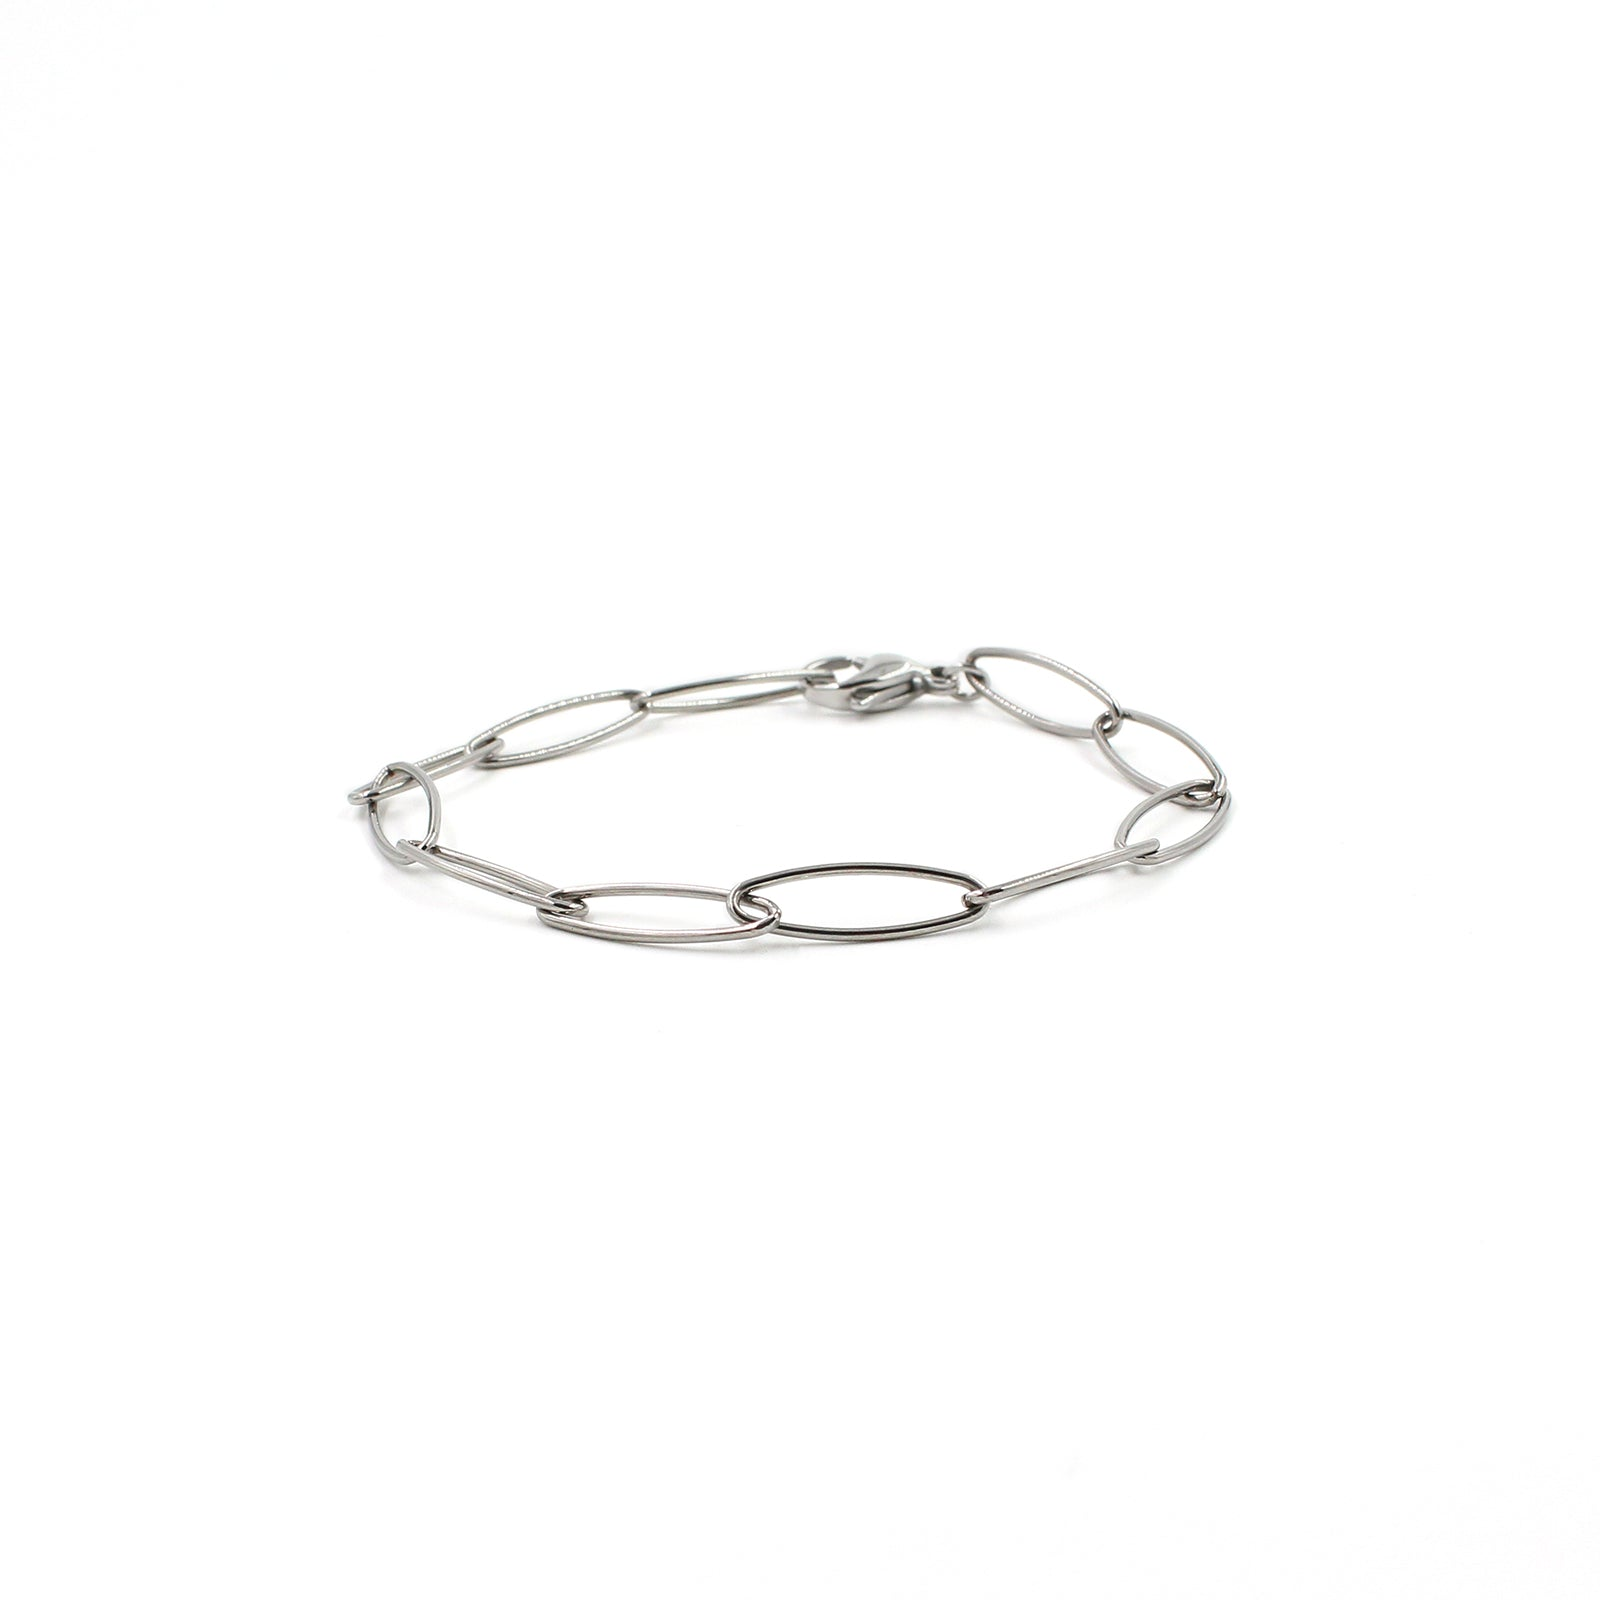 9965106 Stainless Steel Bracelet